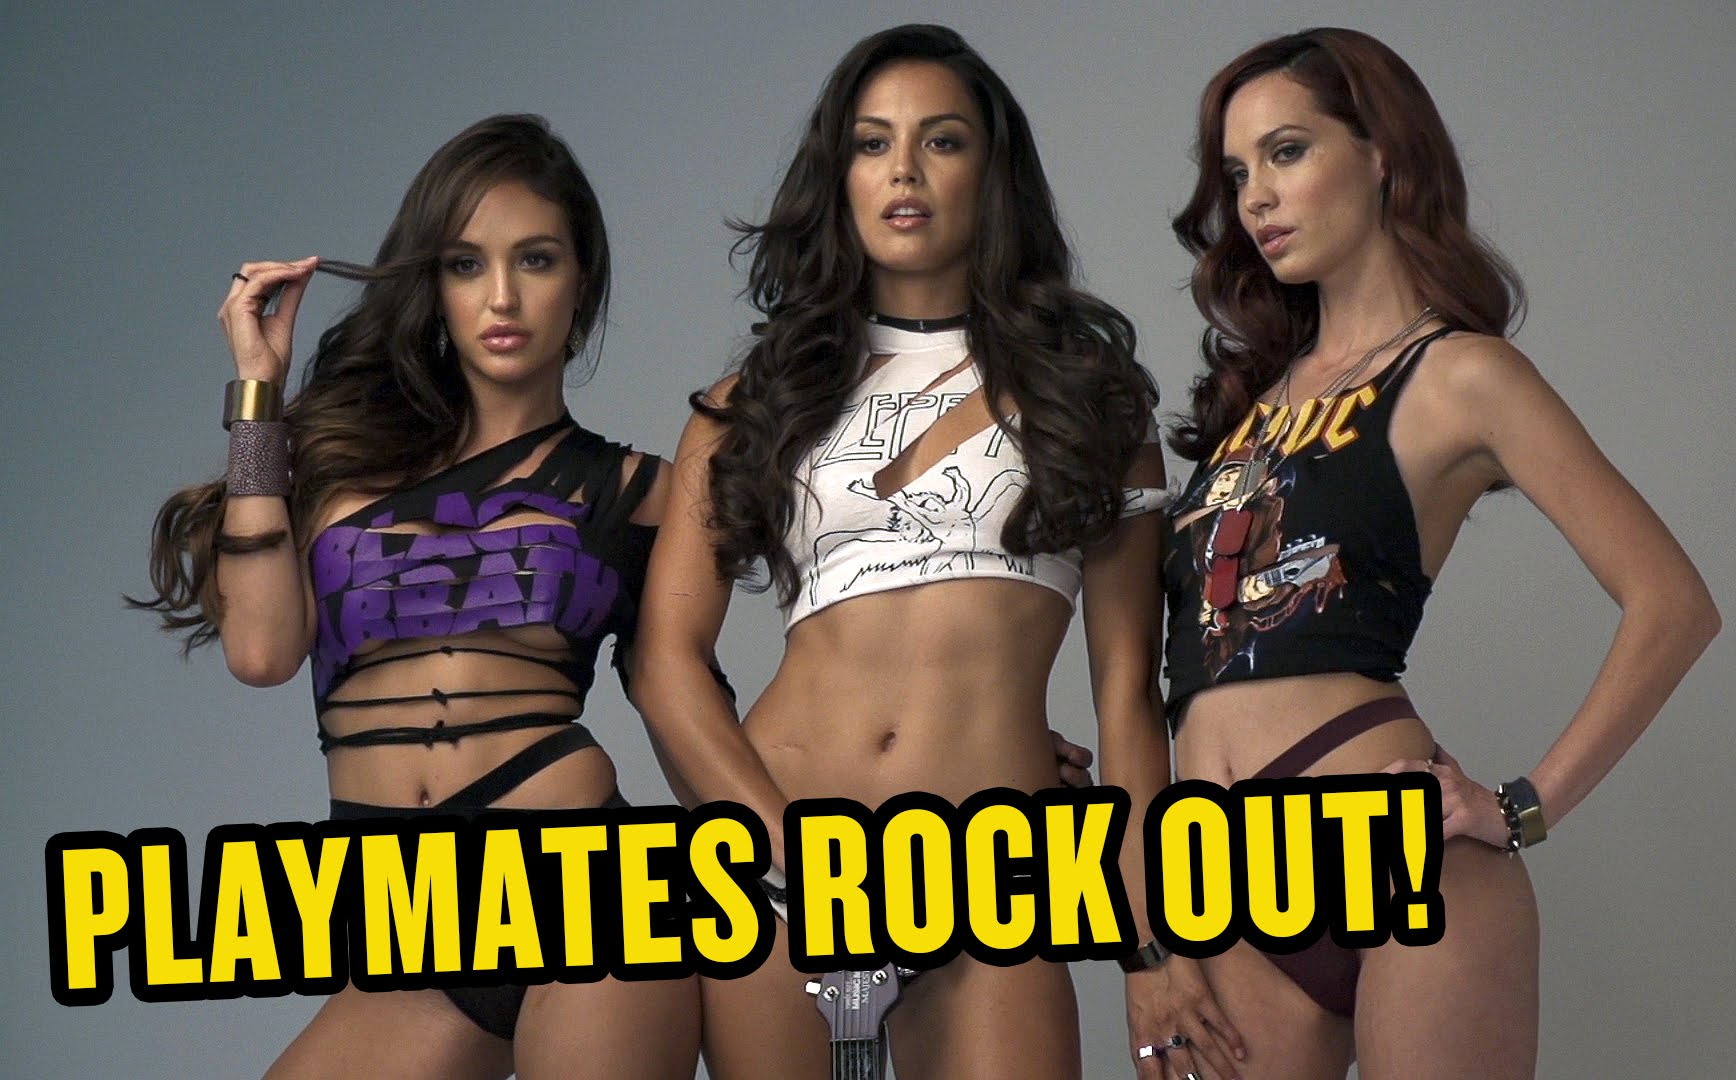 Playmates Rock Out For Guitar World